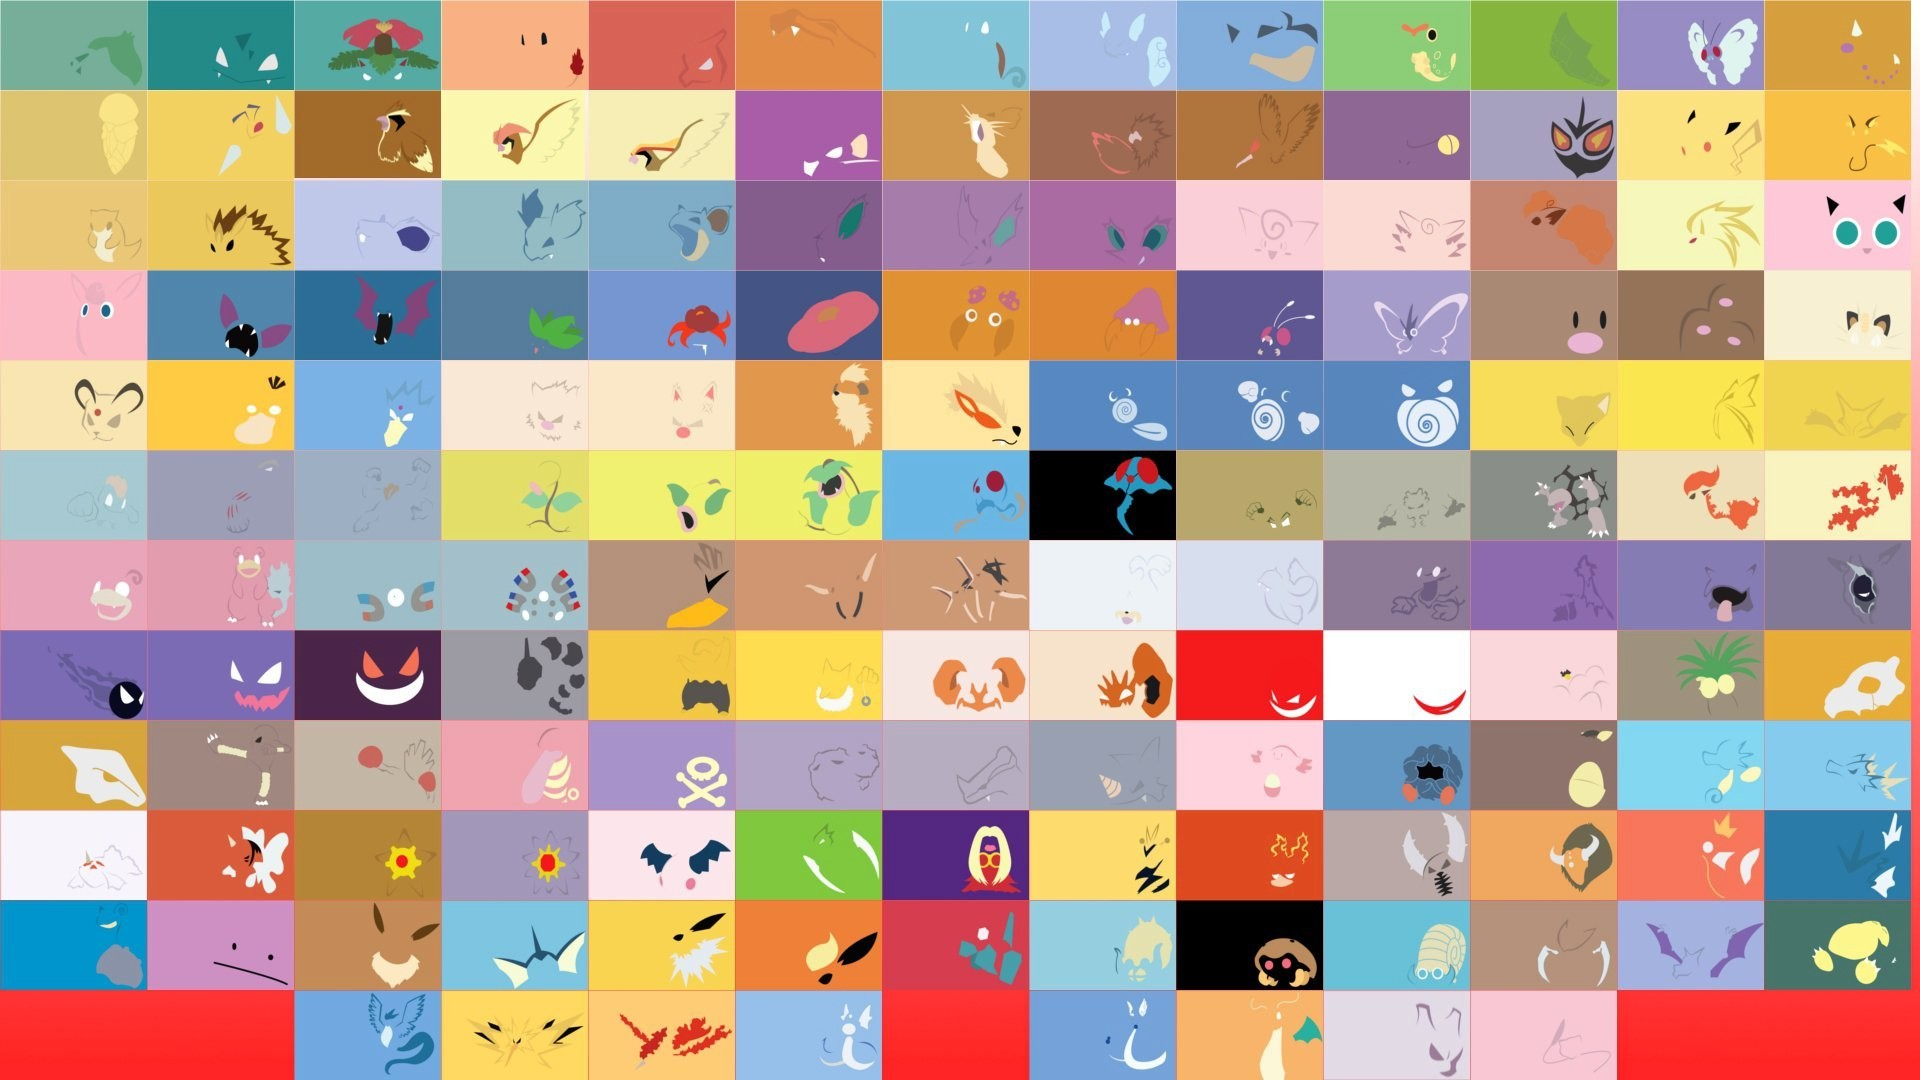 1920x1080 pokemon minimalism textures flowers the cell picture symbol game anime